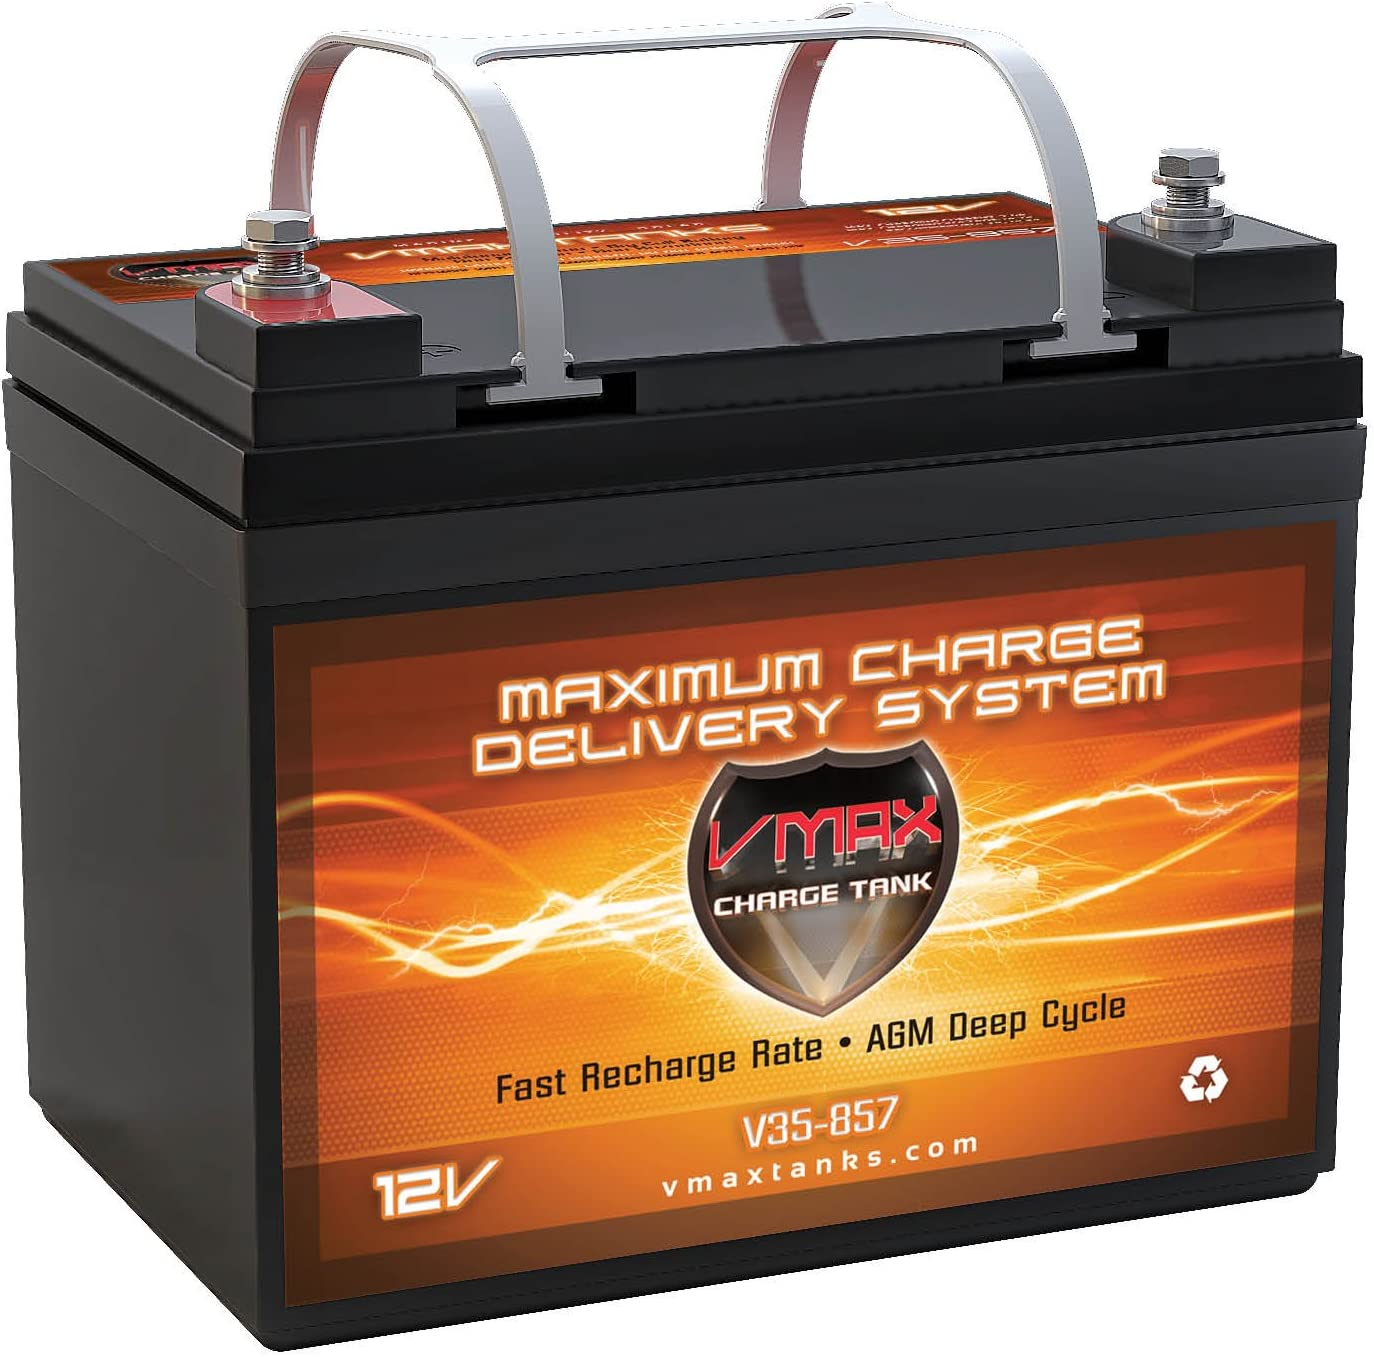 Max 67% OFF of fixed price 64% OFF VMAX857 AGM Deep Cycle Group Compatible U1 Replacement Battery w